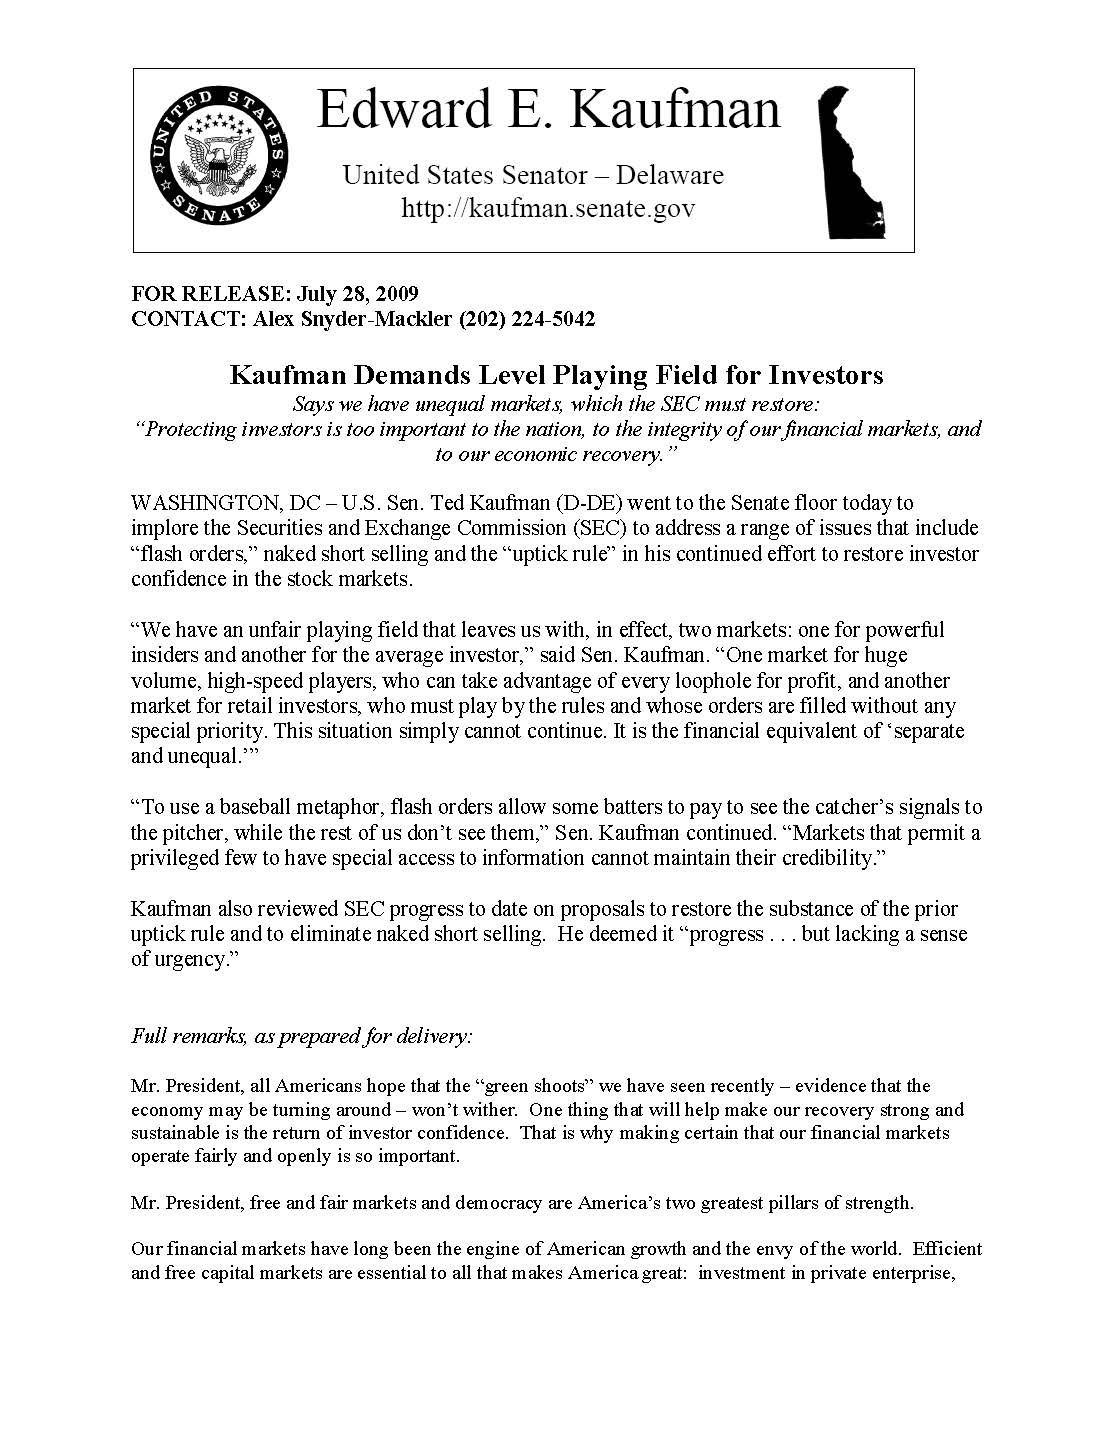 'Kaufman Demands Level Playing Field for Investigators' press release, 2009 July 28